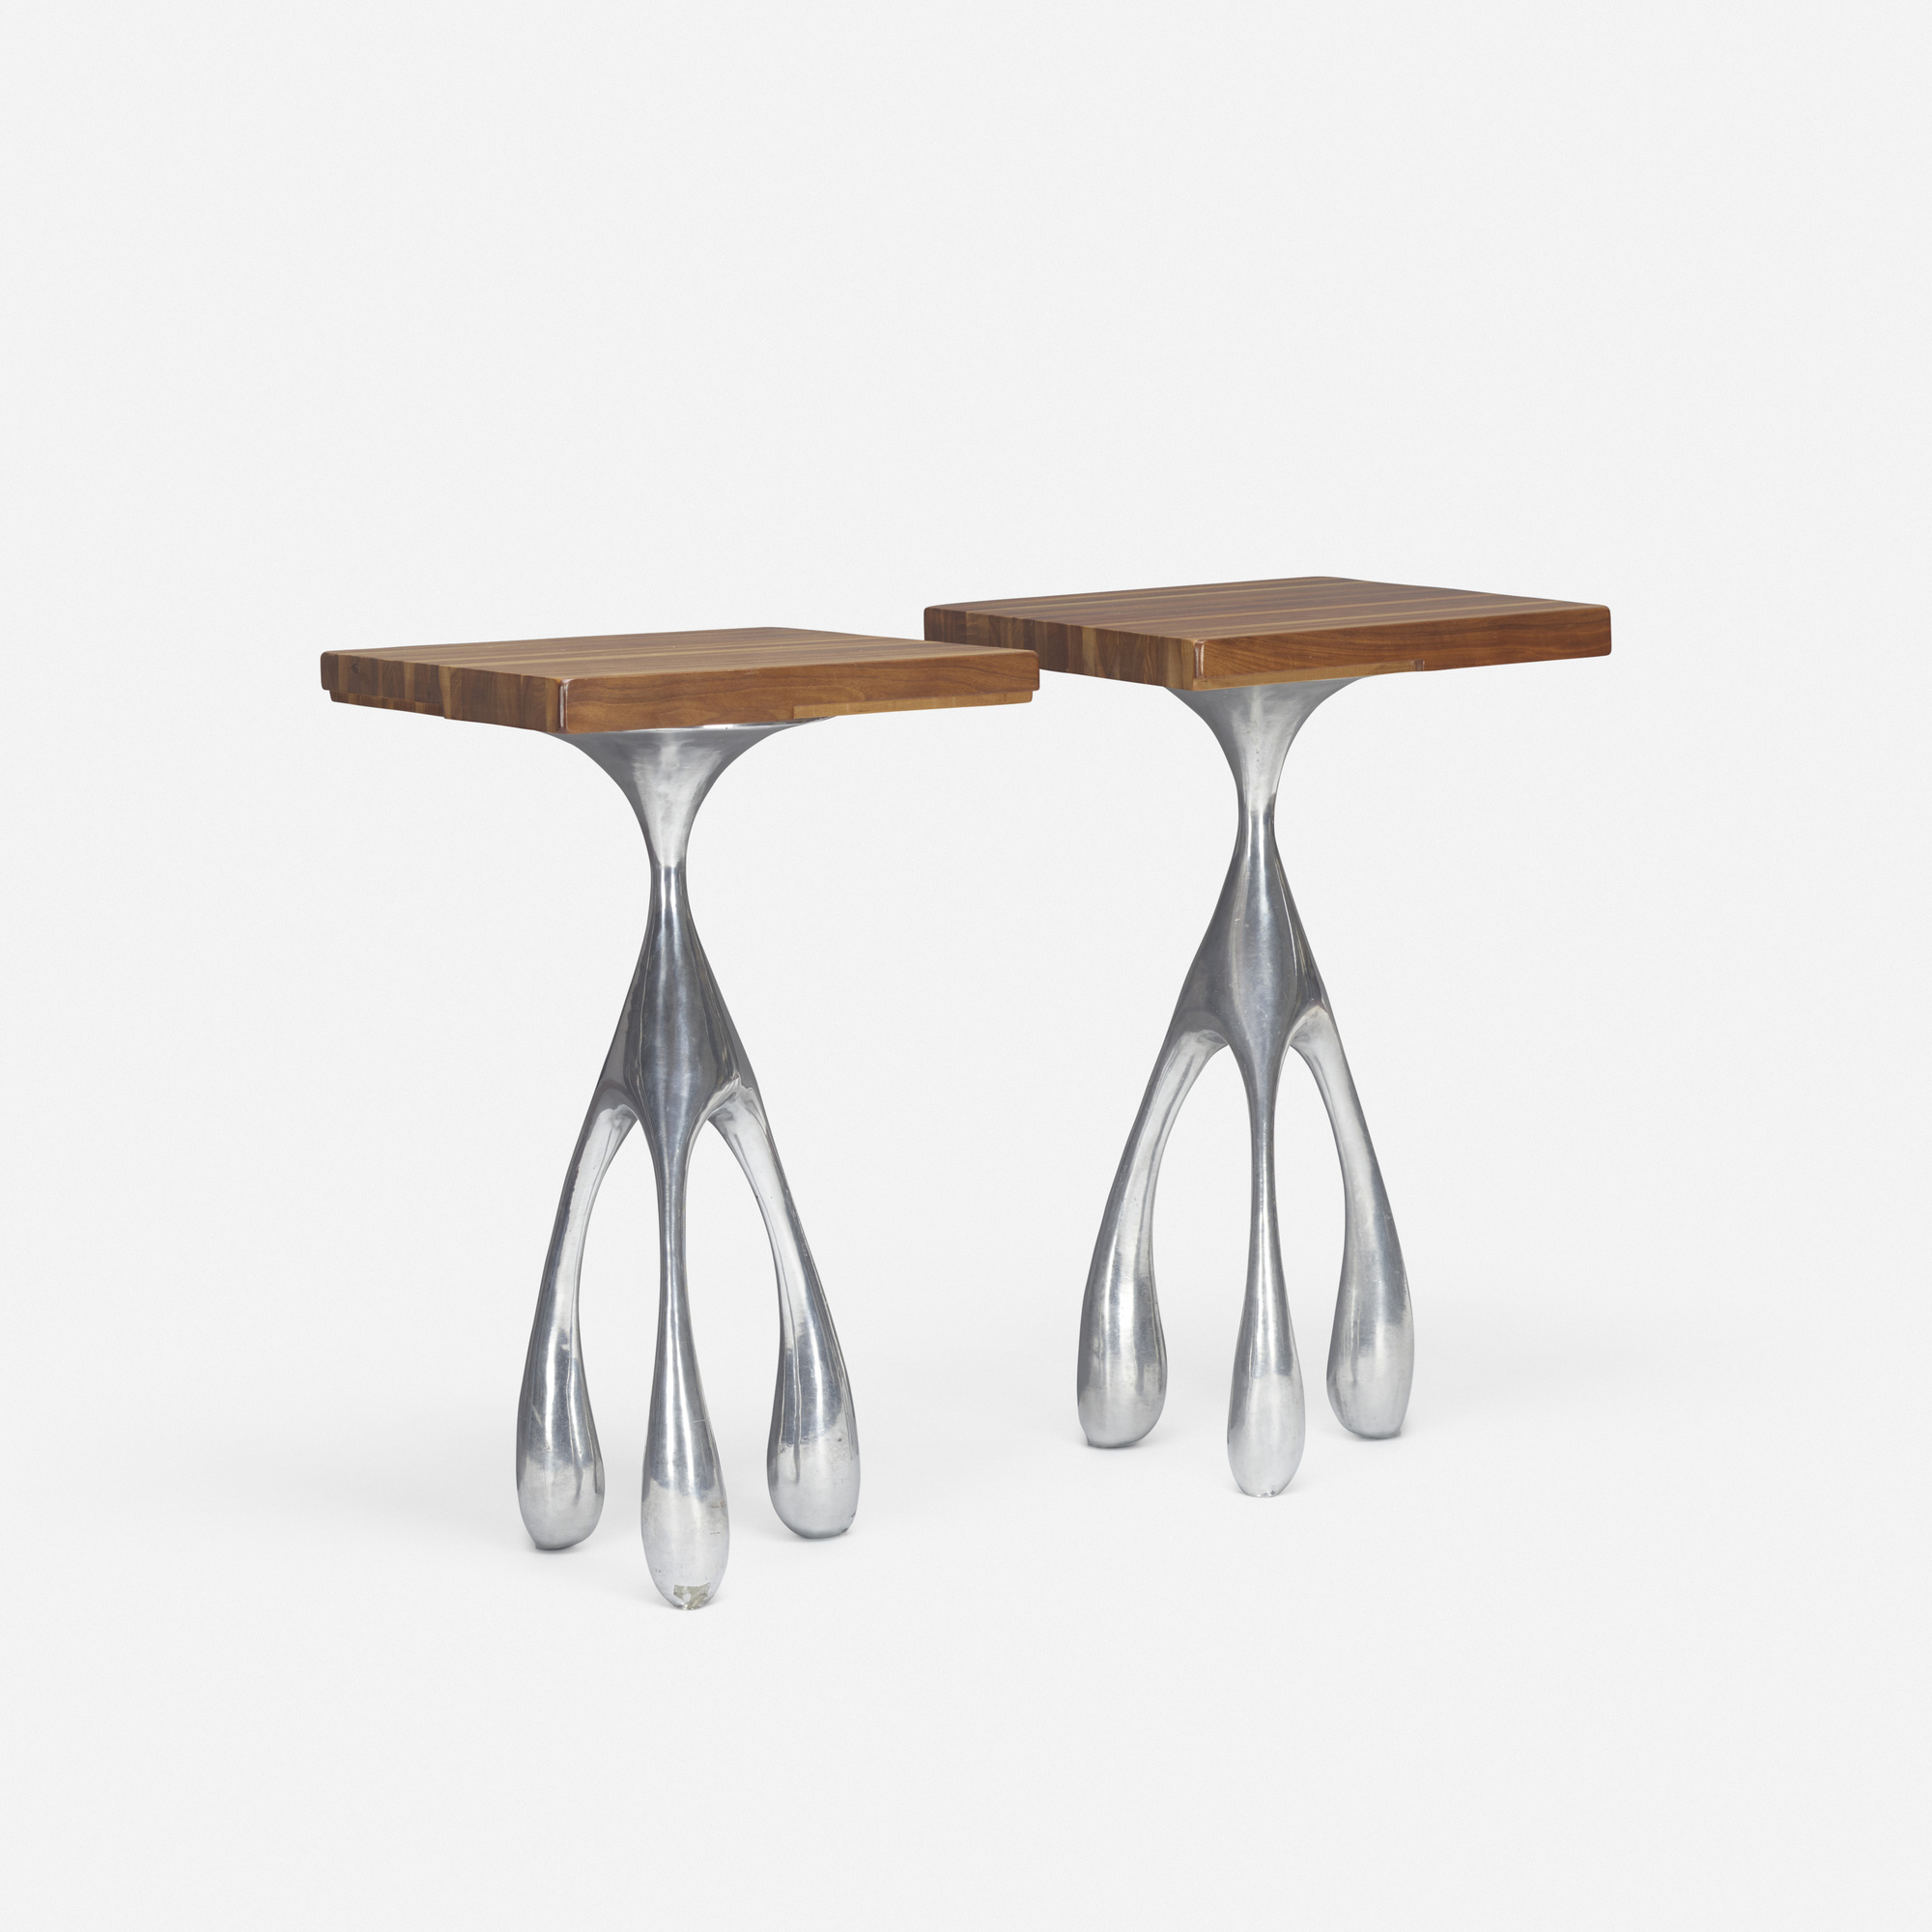 396: Jordan Mozer / pair of occasional tables from Bob San, Chicago (1 of 2)